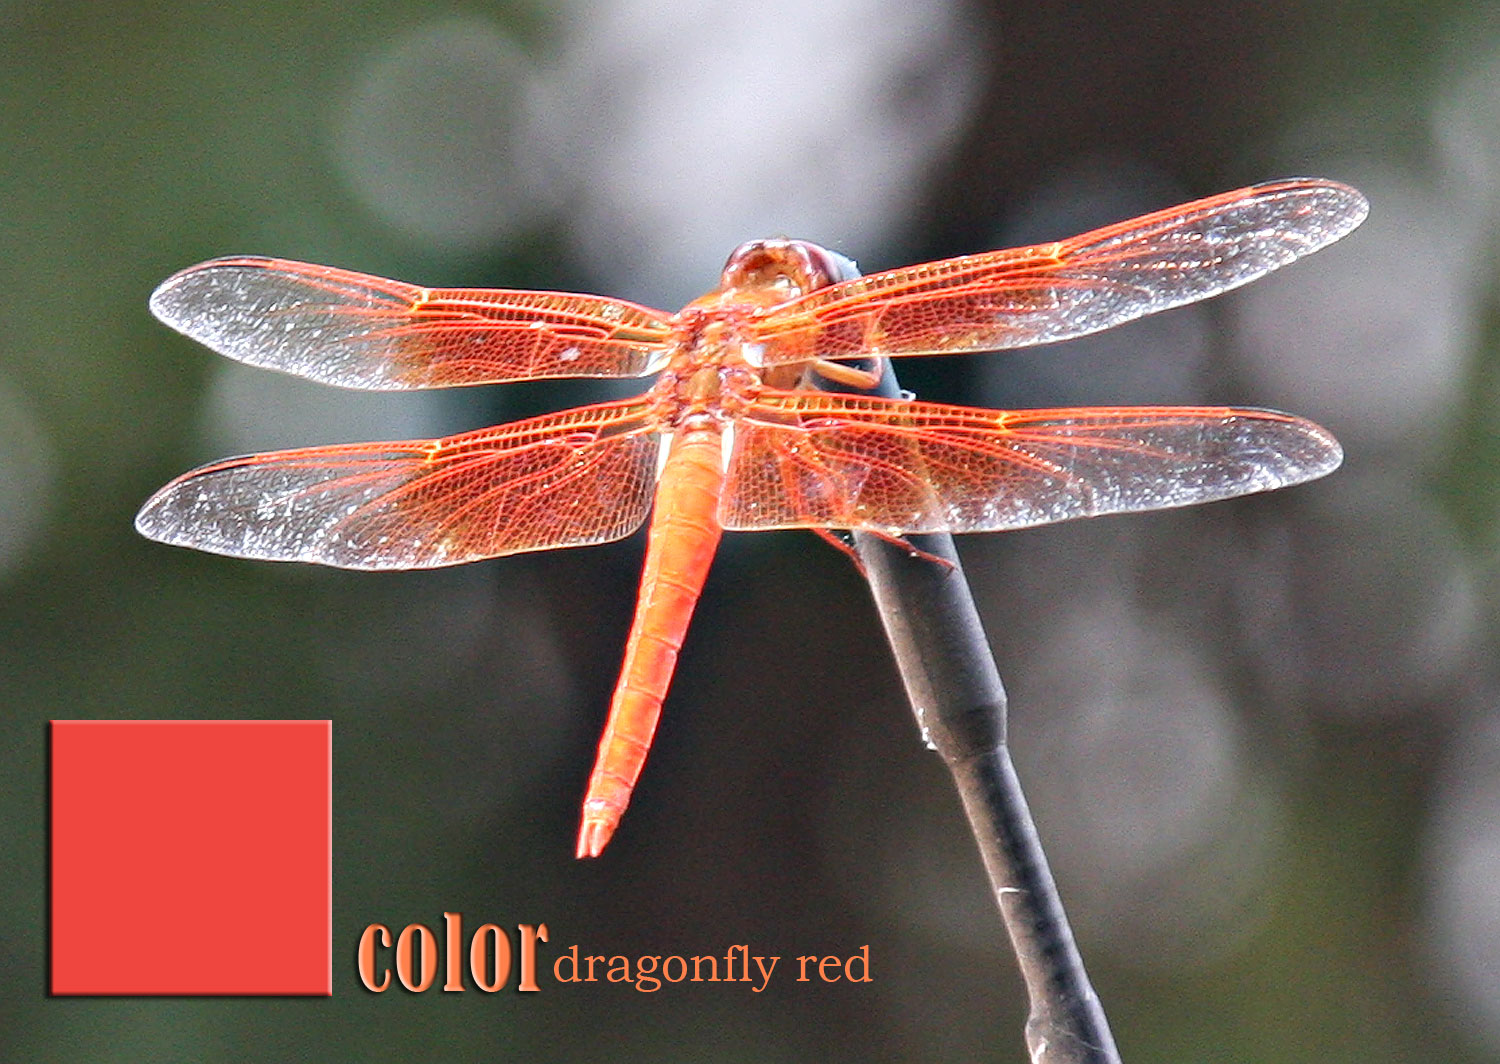 Color: Dragonfly Red CHIARIstyle